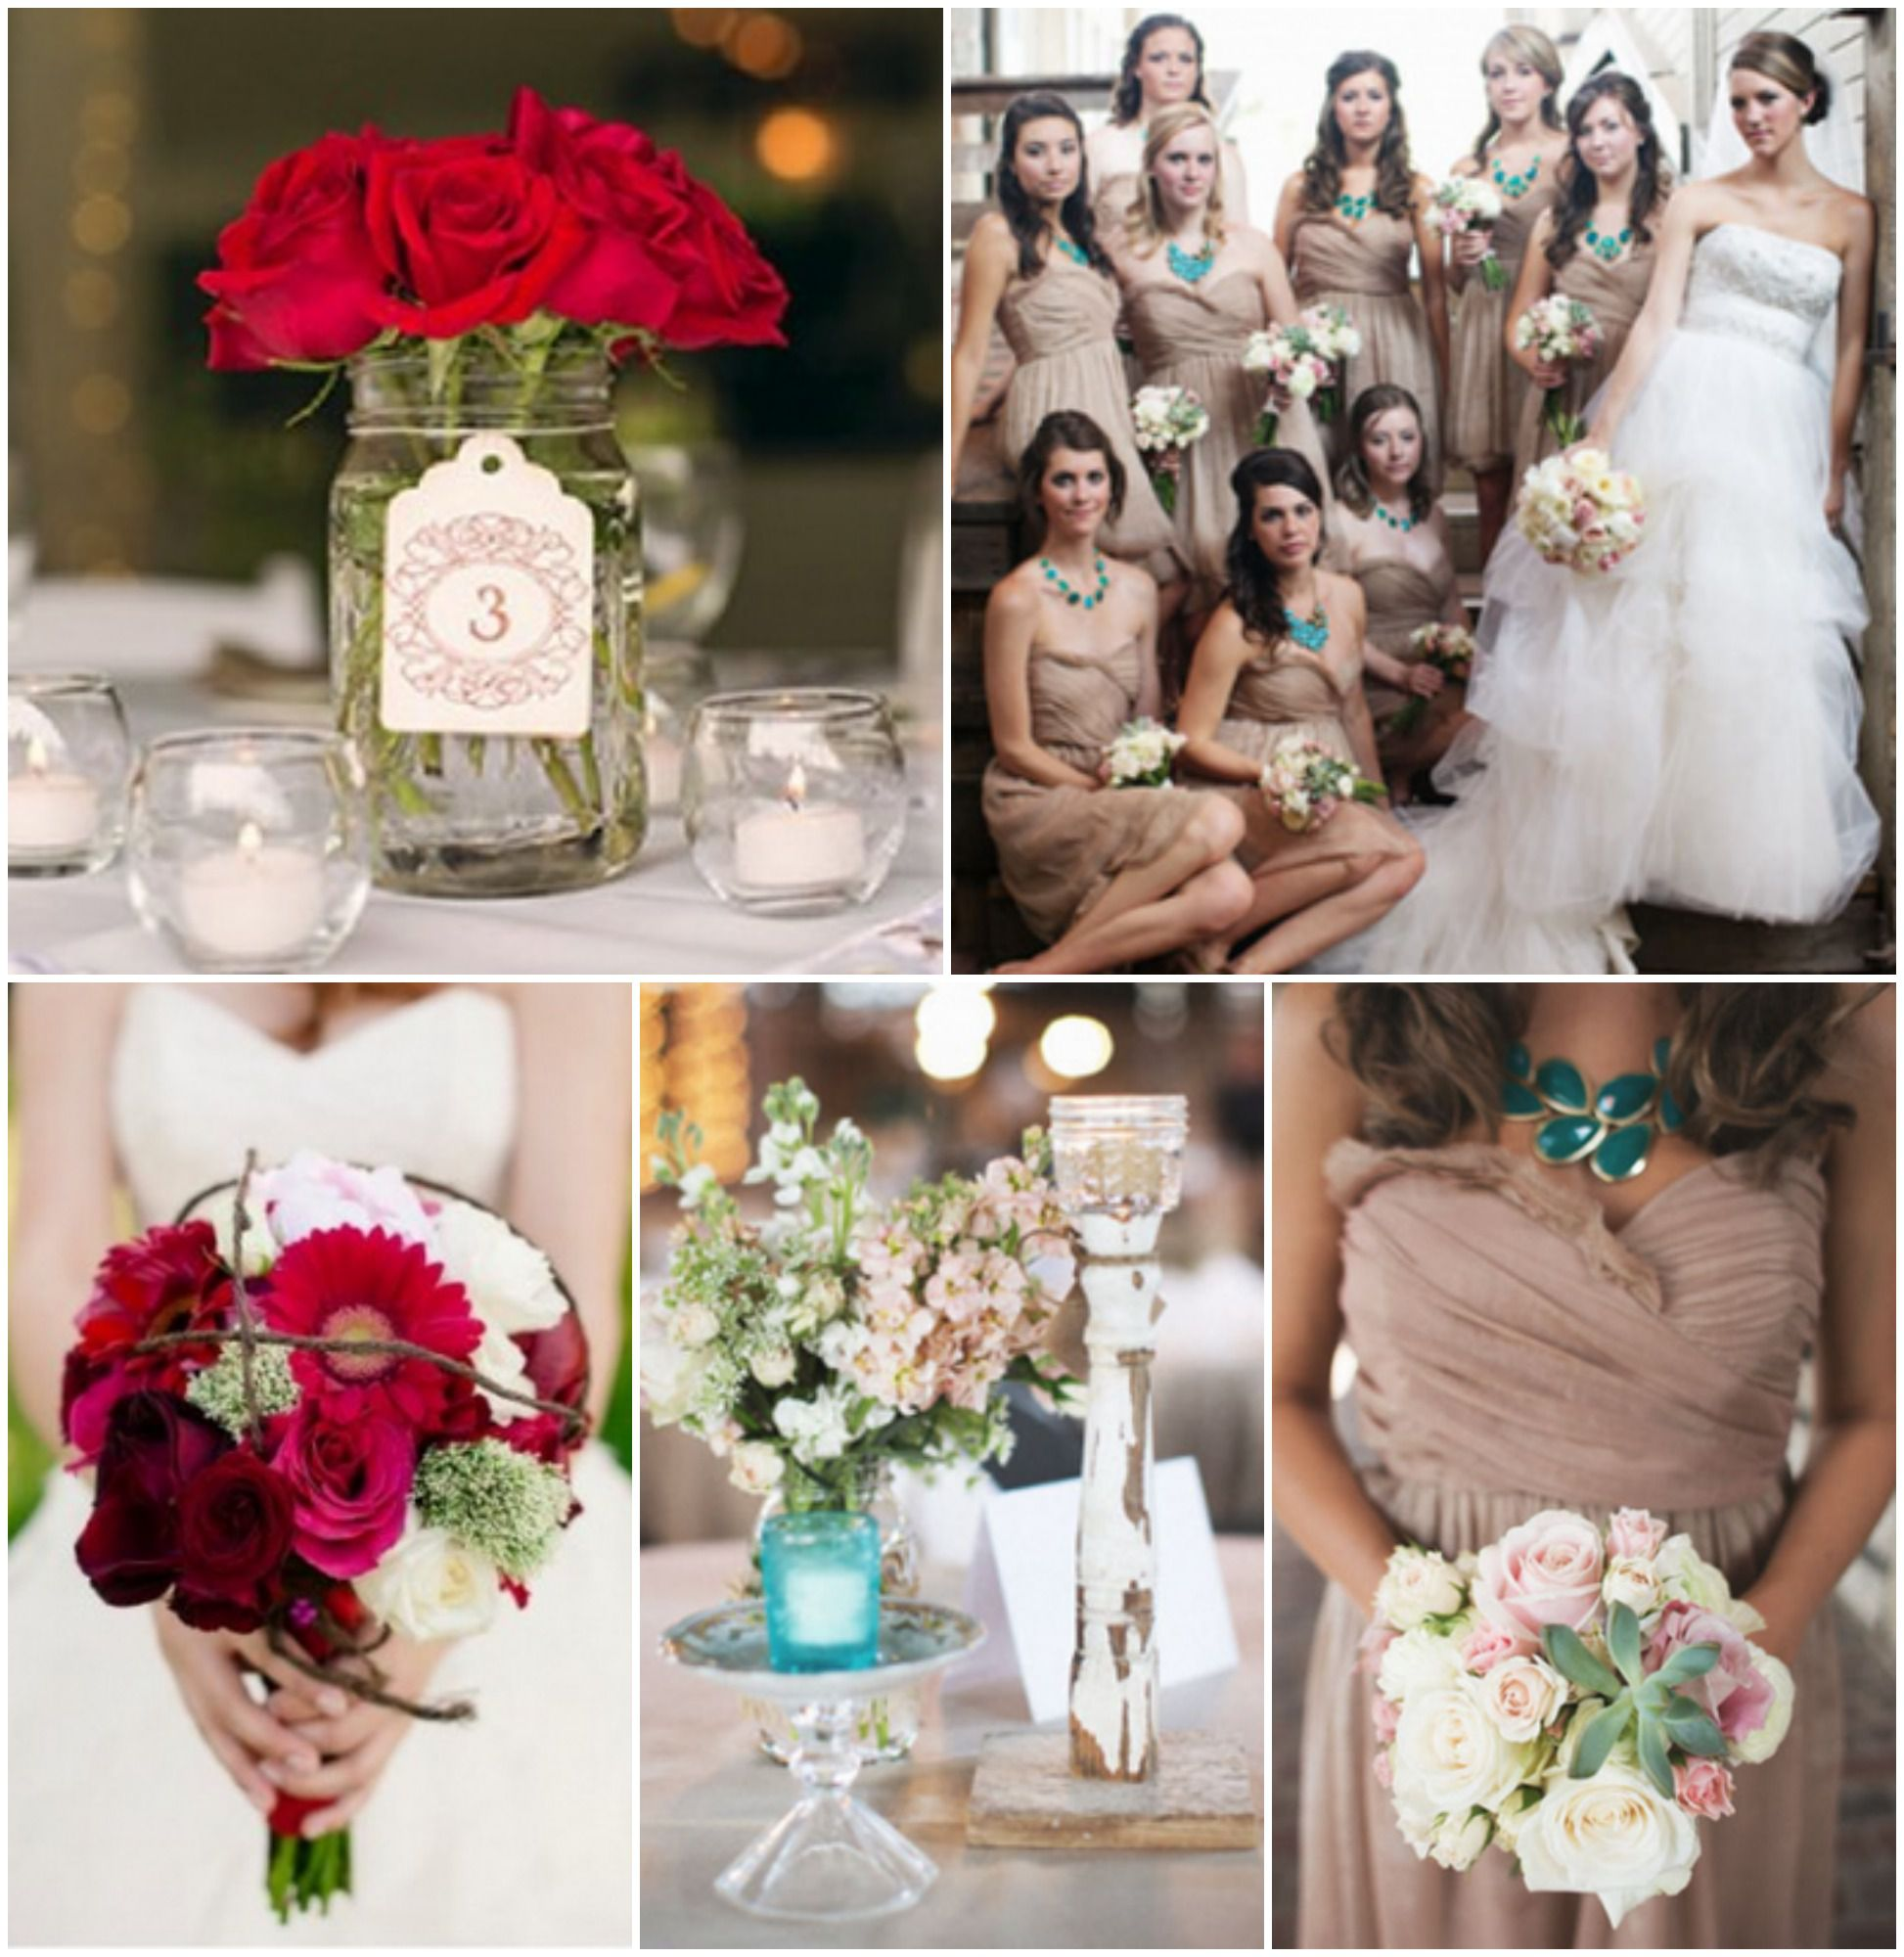 Blue, Red & Cream Wedding Color Inspiration - Rustic Wedding Chic